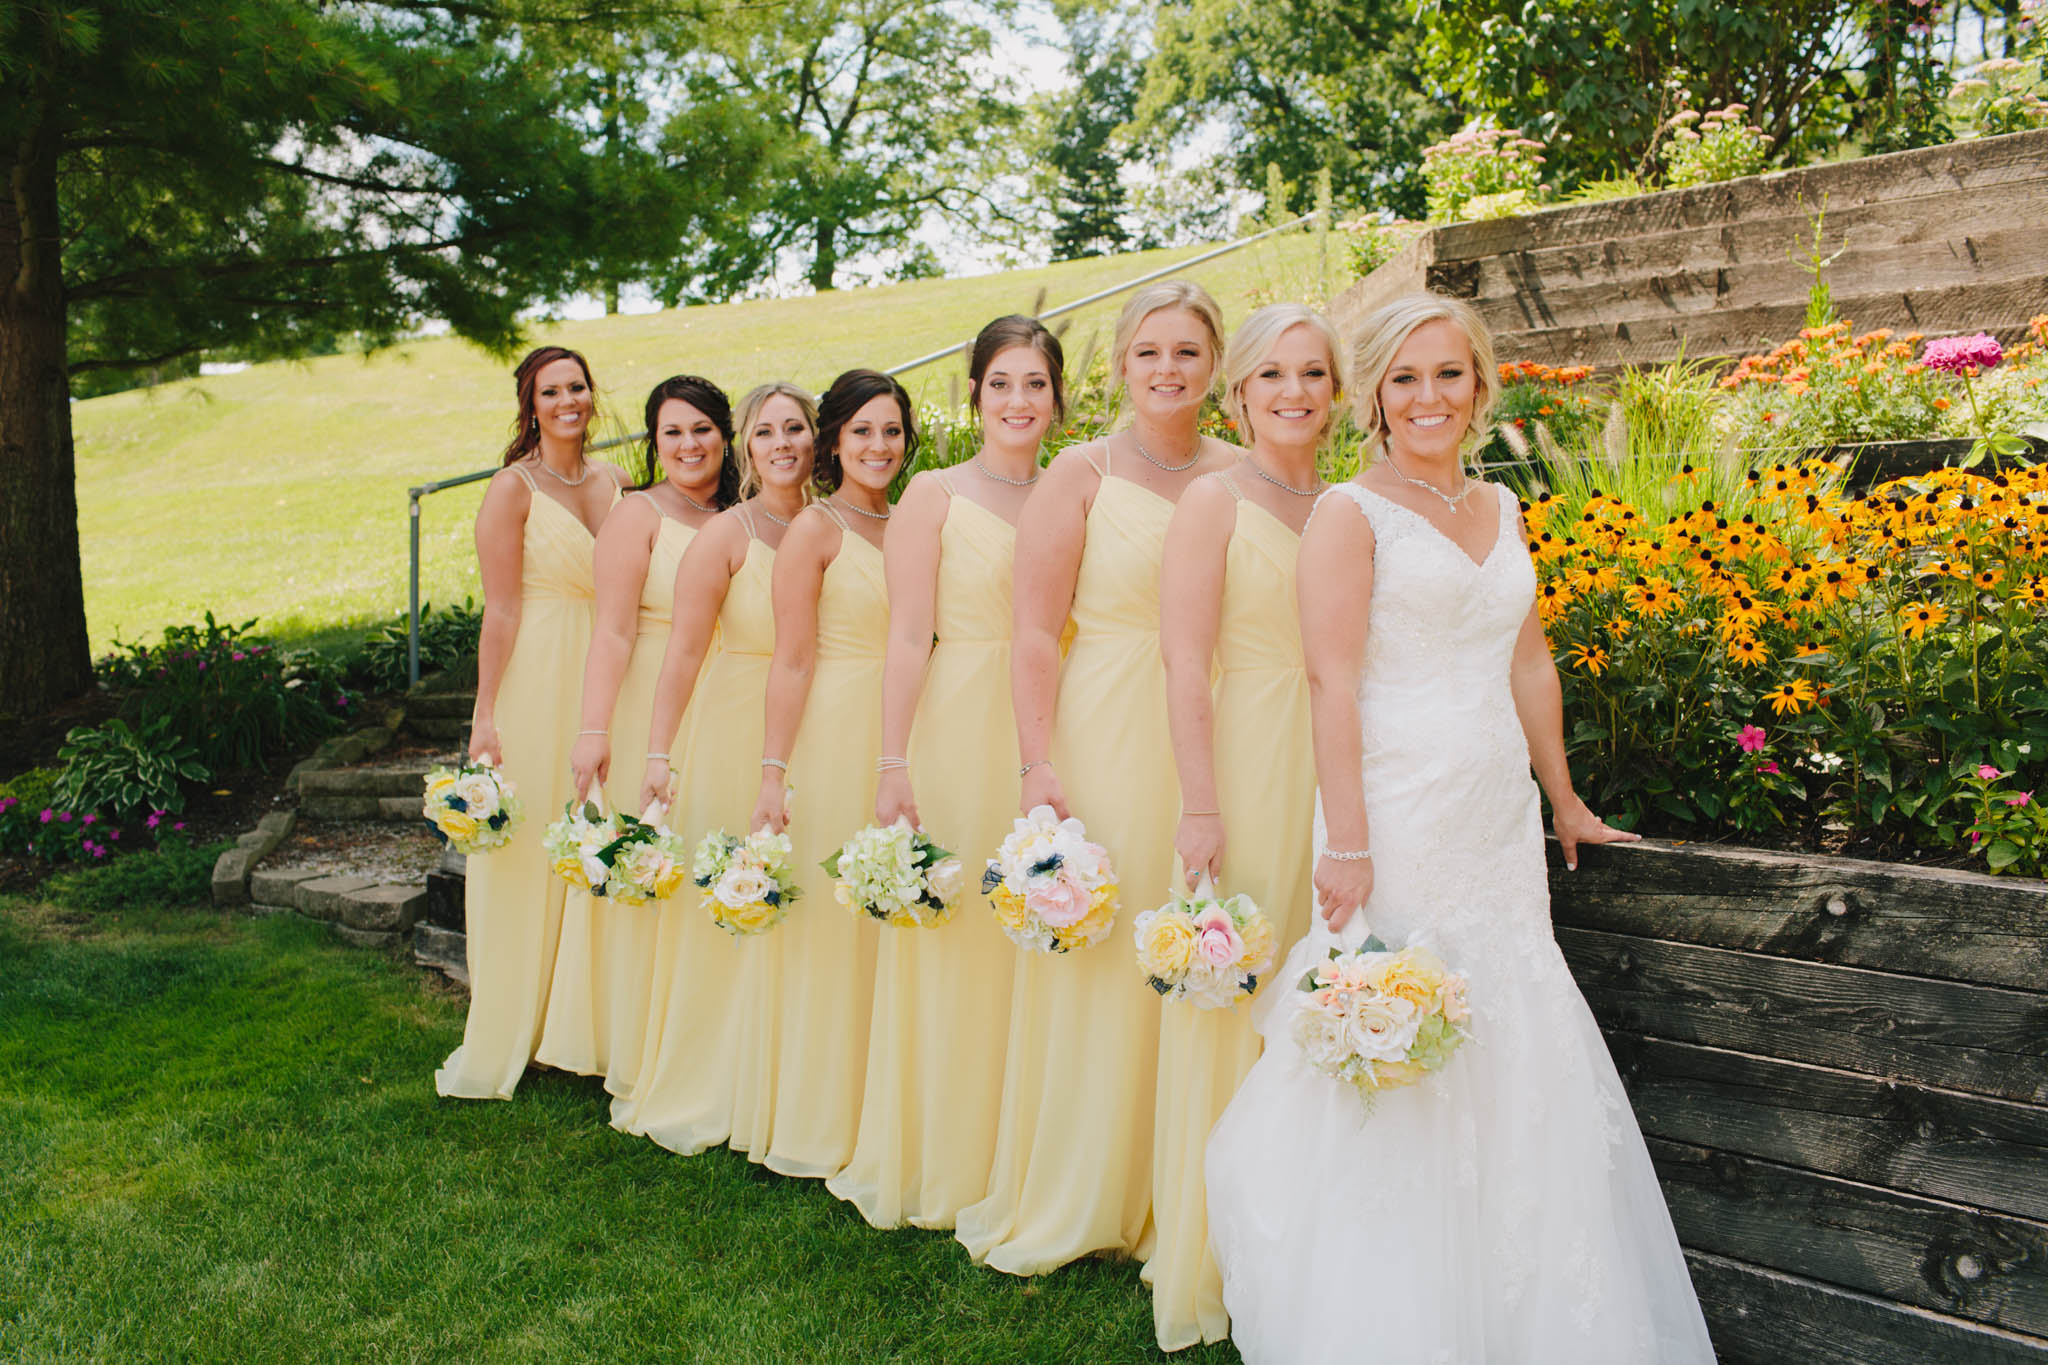 Jillian VanZytveld Photography - Grand Rapids Lifestyle Wedding Photography - 046.jpg